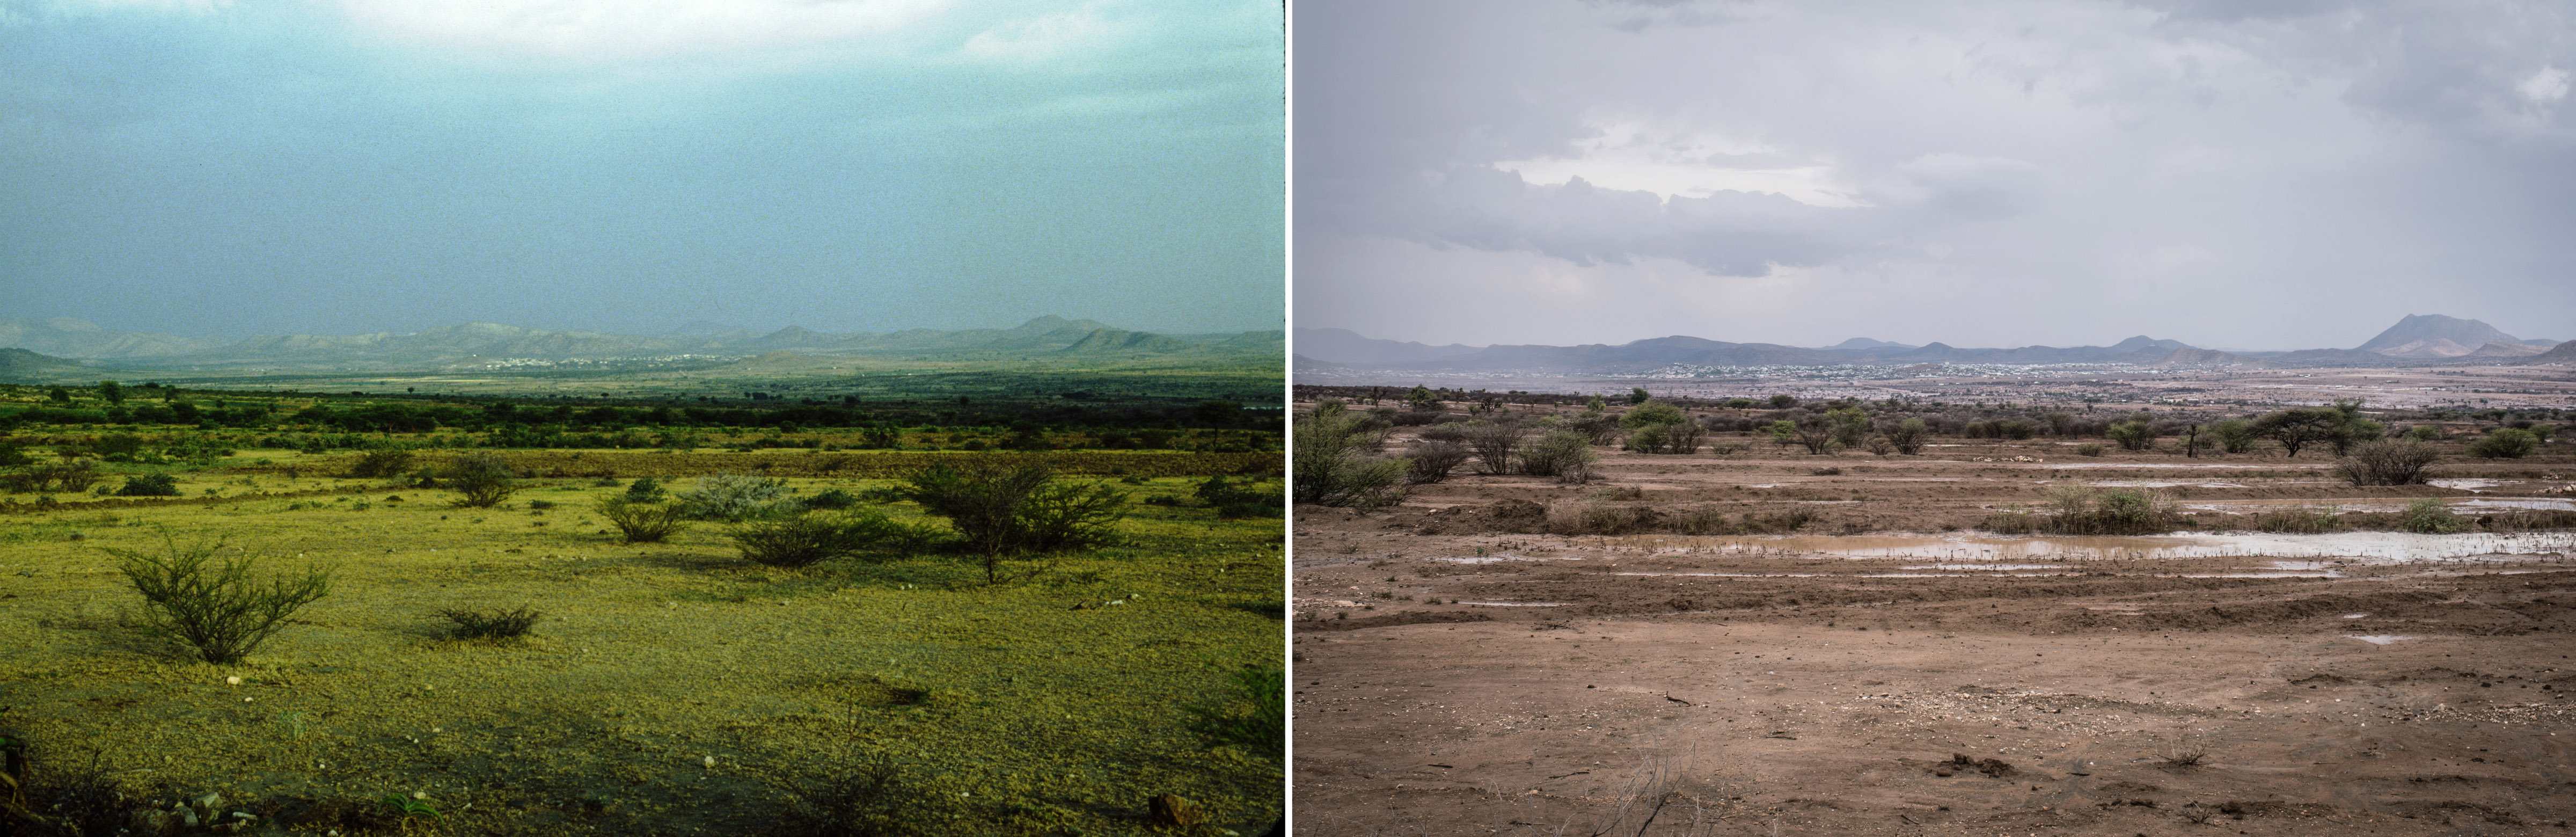 A view of the town of Borama. The image on the left is from Watson's land surveys of Somalia. The image on the rights is of the same site, taken decades later by photographer Nichole Sobecki.